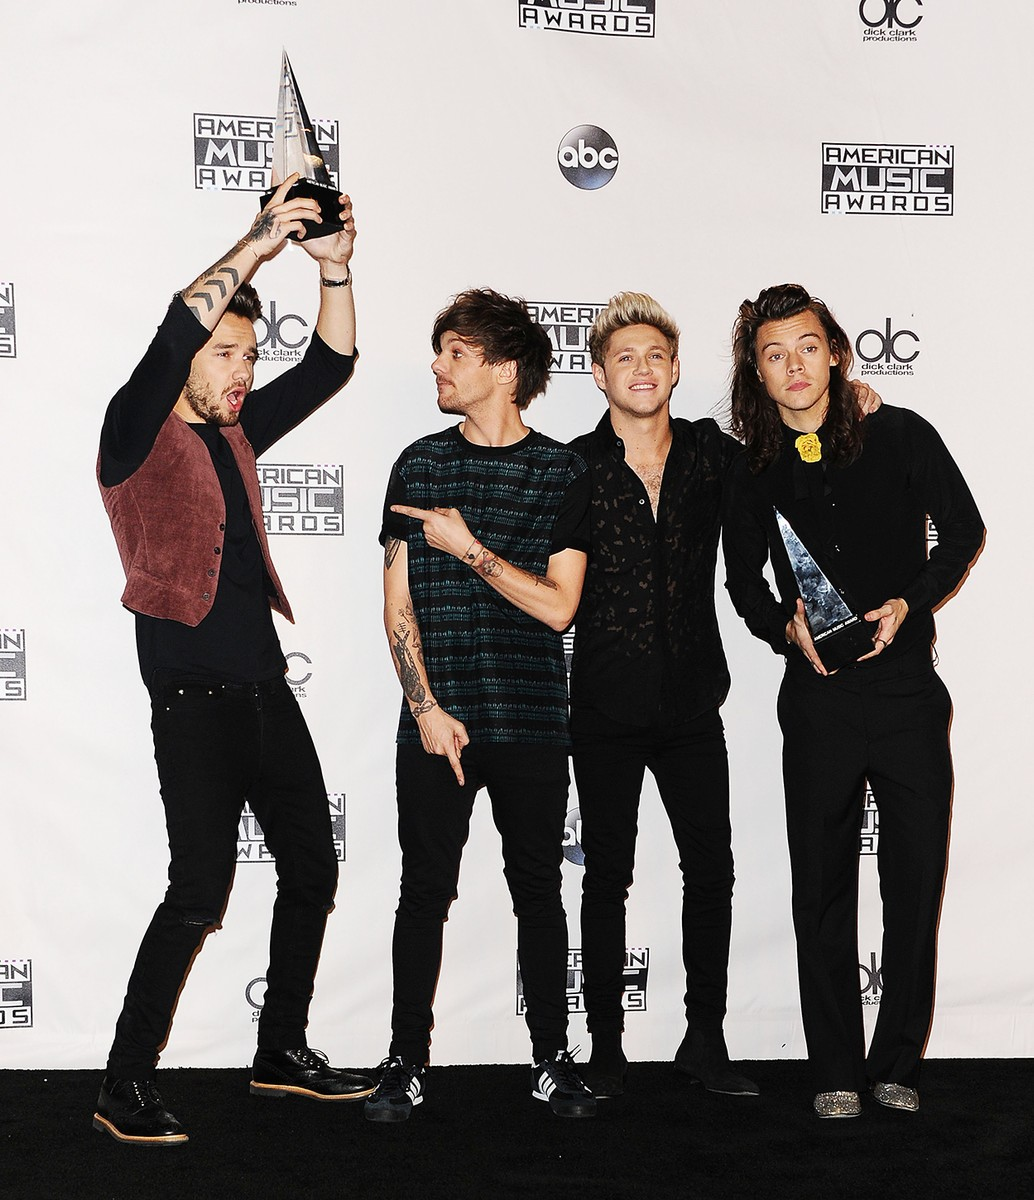 One Direction backstage after winning the Artist of the Year Award at the 2015 American Music Awards, amas